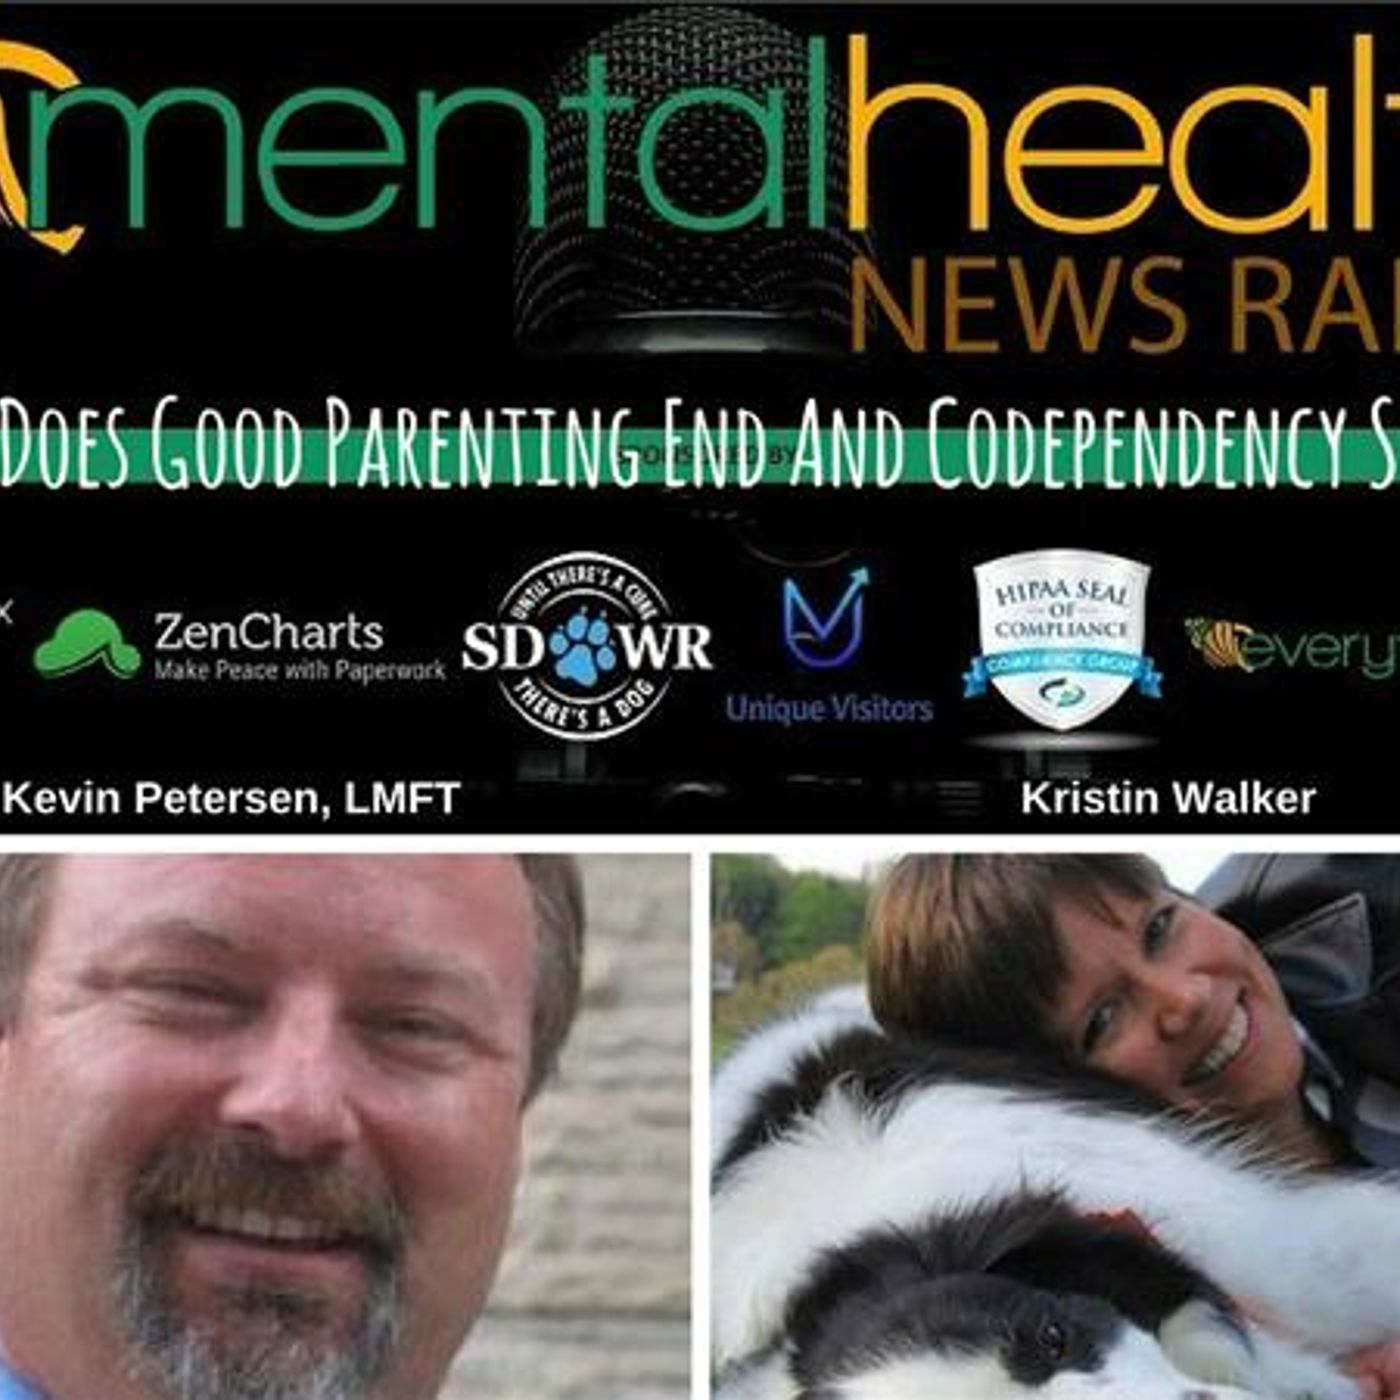 Mental Health News Radio - Where Does Good Parenting End And Codependency Start?